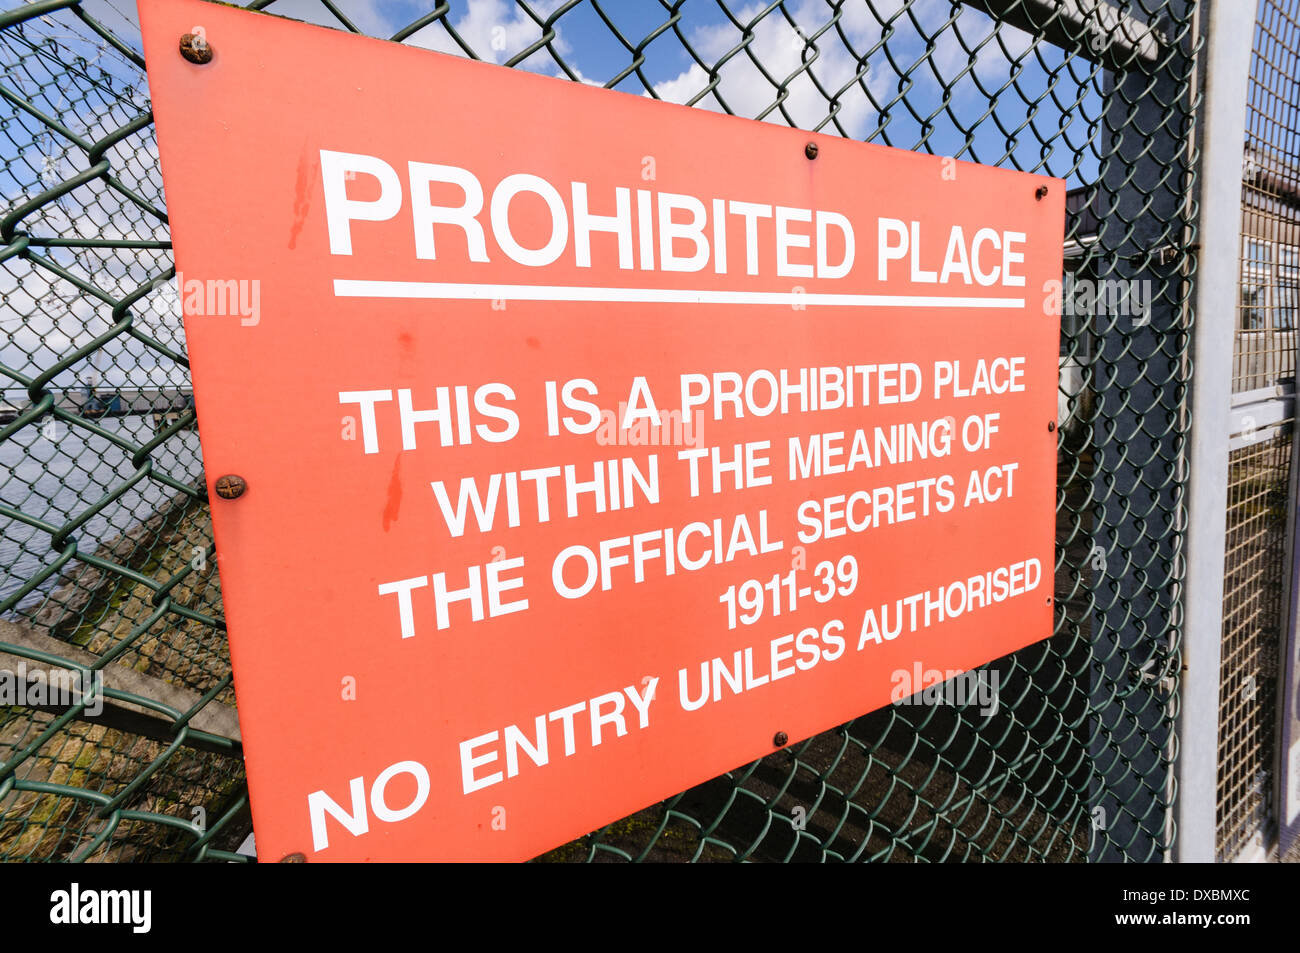 Sign advising visitors that a site is a prohibited place within the meaning of The Official Secrets Act 1911-49. - Stock Image